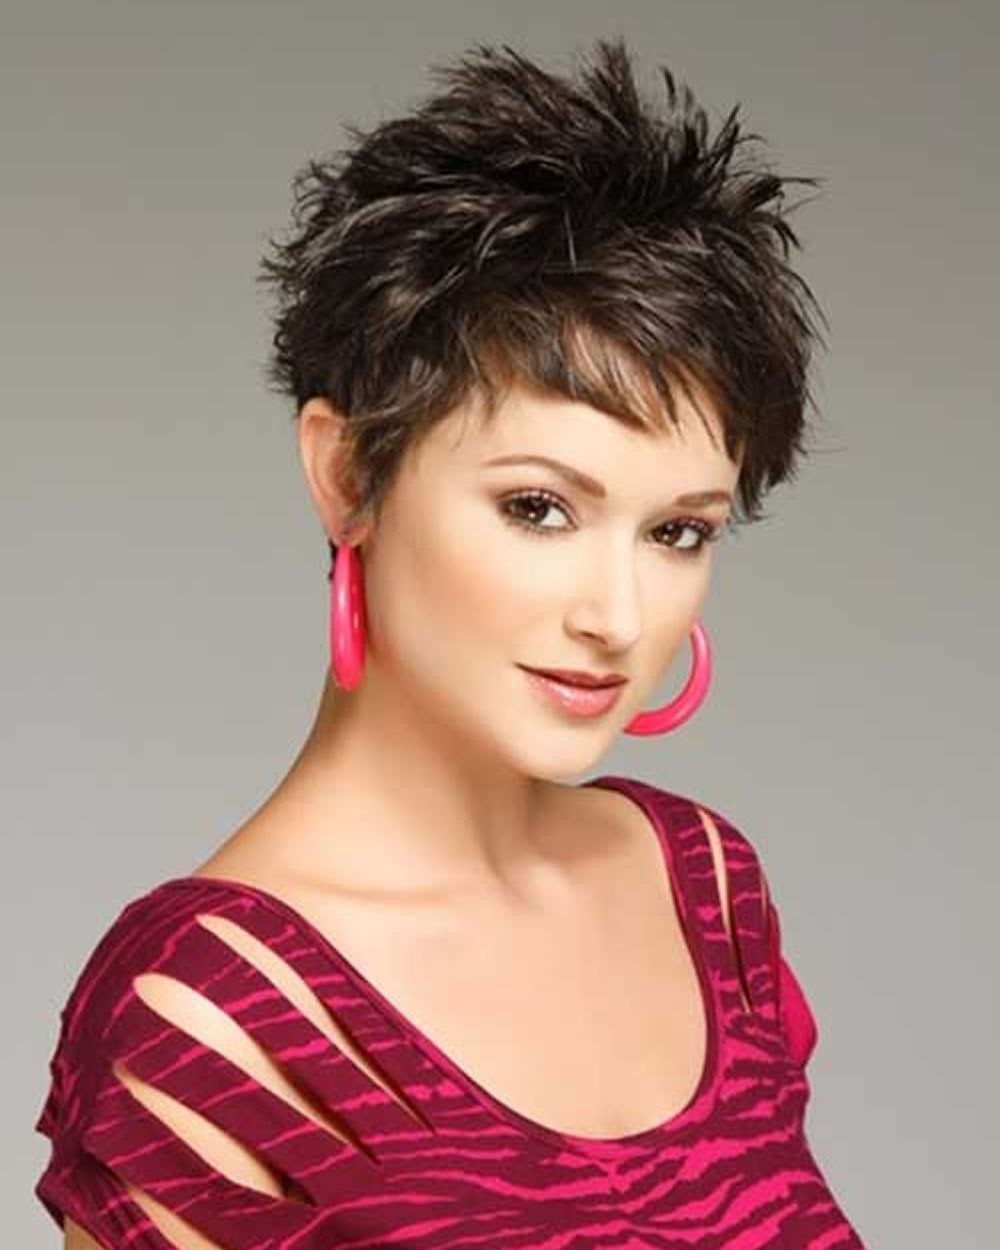 The Best Short Spiky Haircuts Hairstyles For Women 2018 – Page 7 Pictures